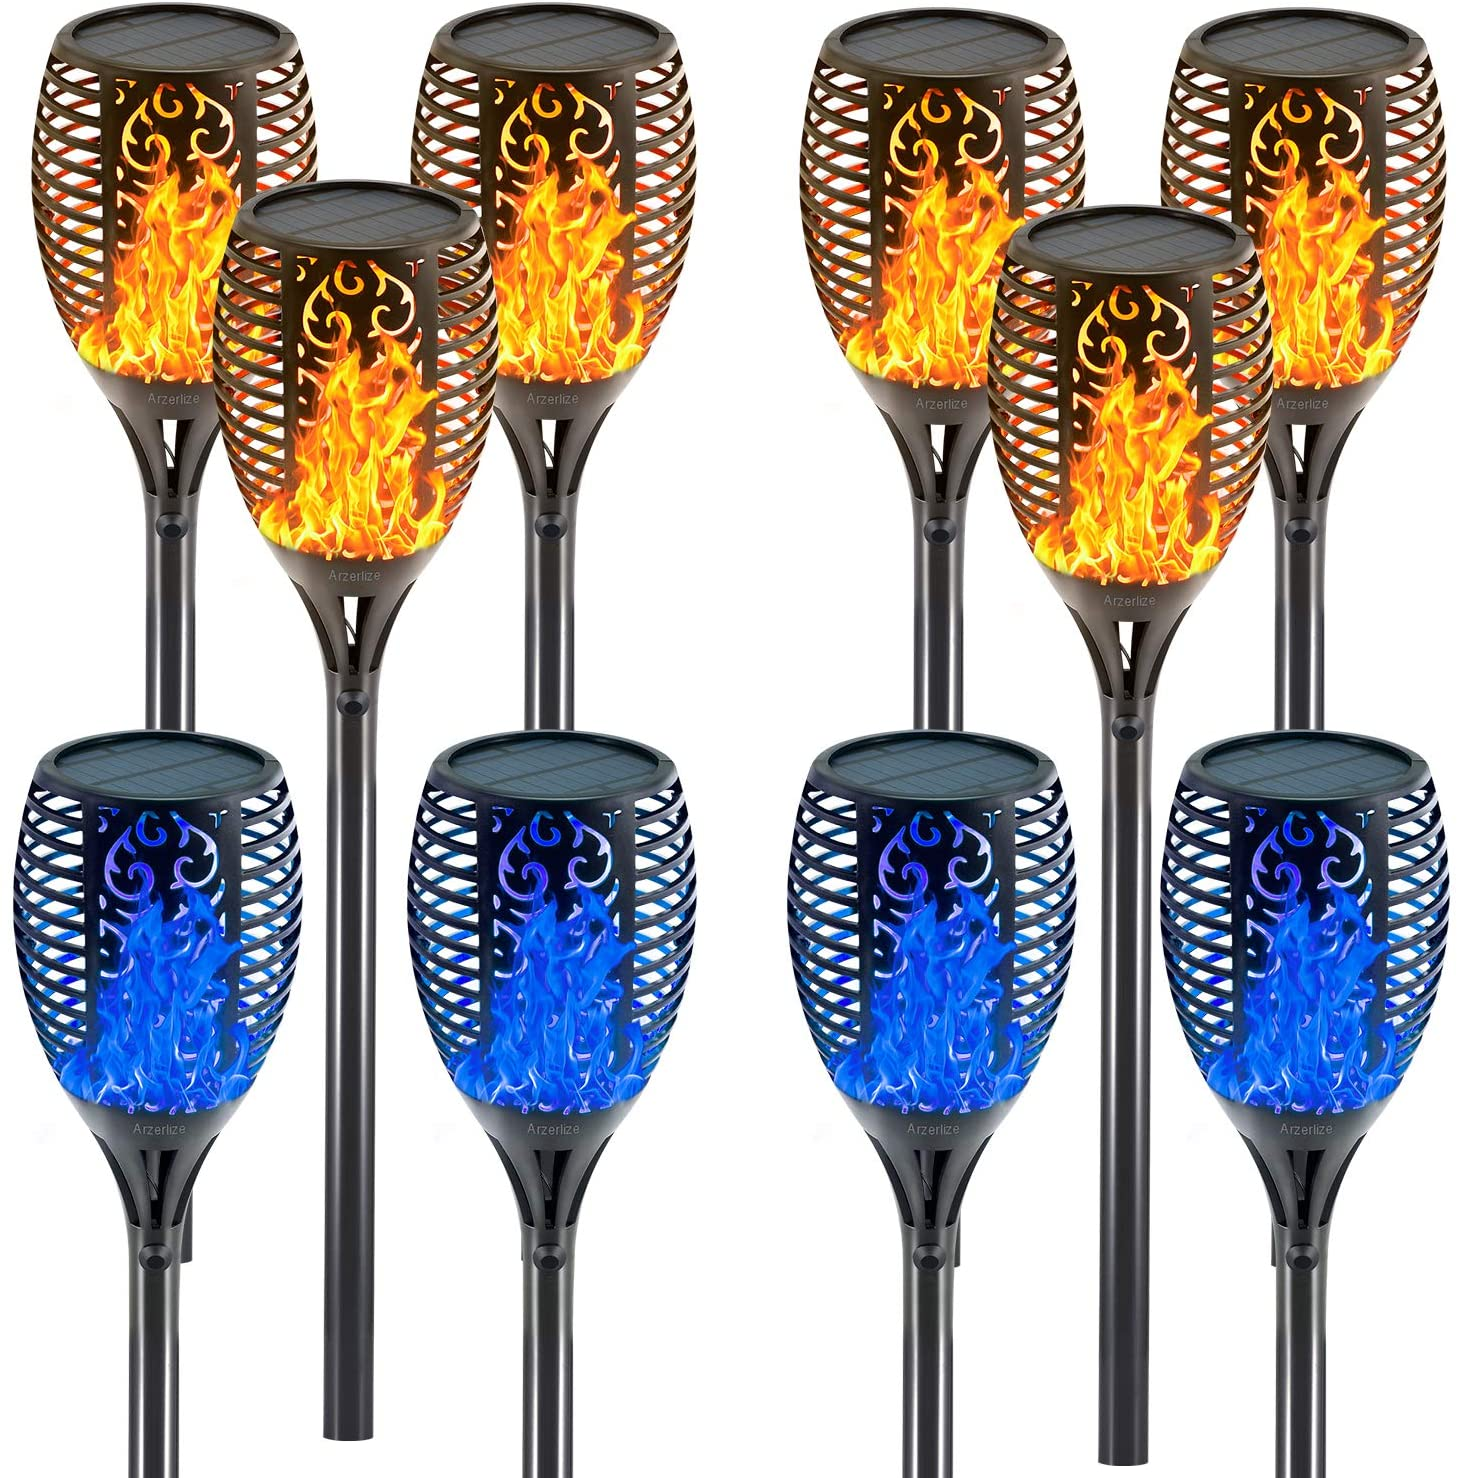 arzerlize Solar Lights Outside Colorful 10Pcs Blue&Yellow Tiki Torches Solar Flame lamp Torch Realistic Dancing Flame Yard Decor Garden Decorations Outdoor Waterproof Value Combination